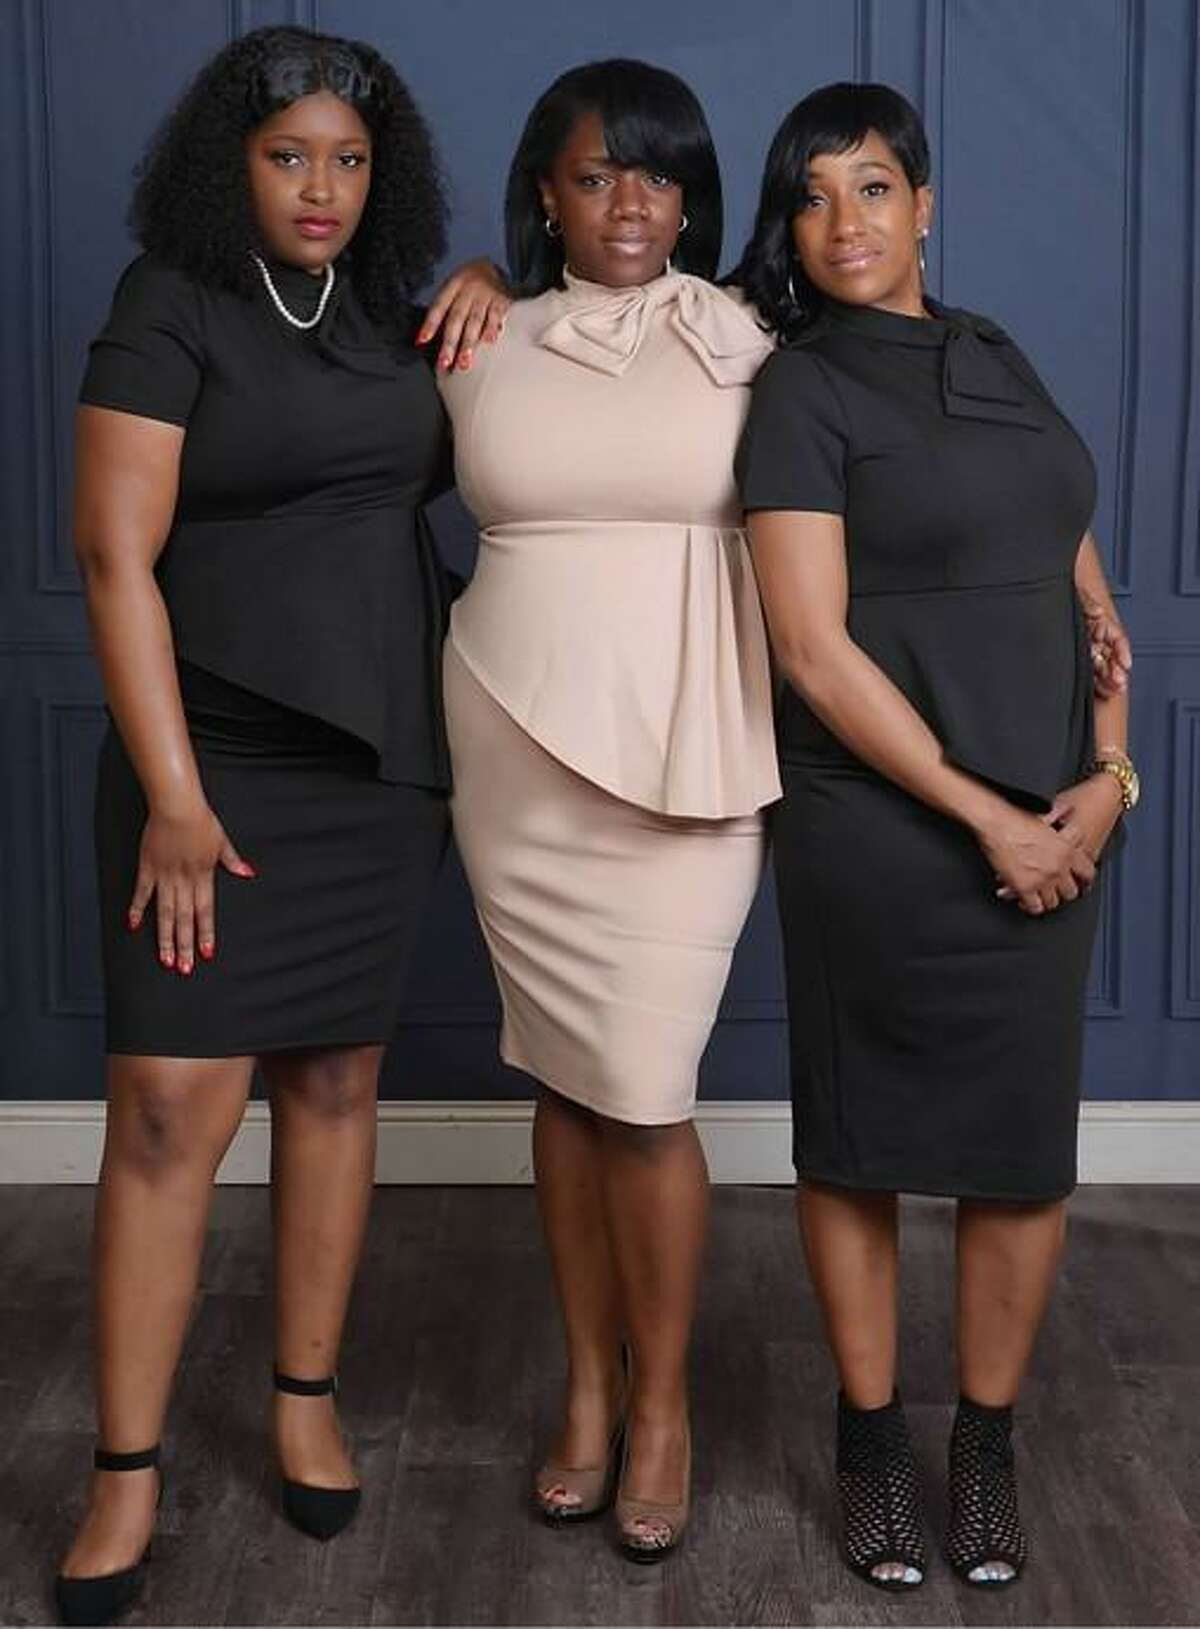 Distinguished as the youngest African American female-led real estate brokerage in central Connecticut, real estate broker Tawana Bourne announces the opening of her real estate brokerage firm, Trinity Realty LLC. She runs the company with her sister, Kareece Holley, and niece Taminesha Holley.